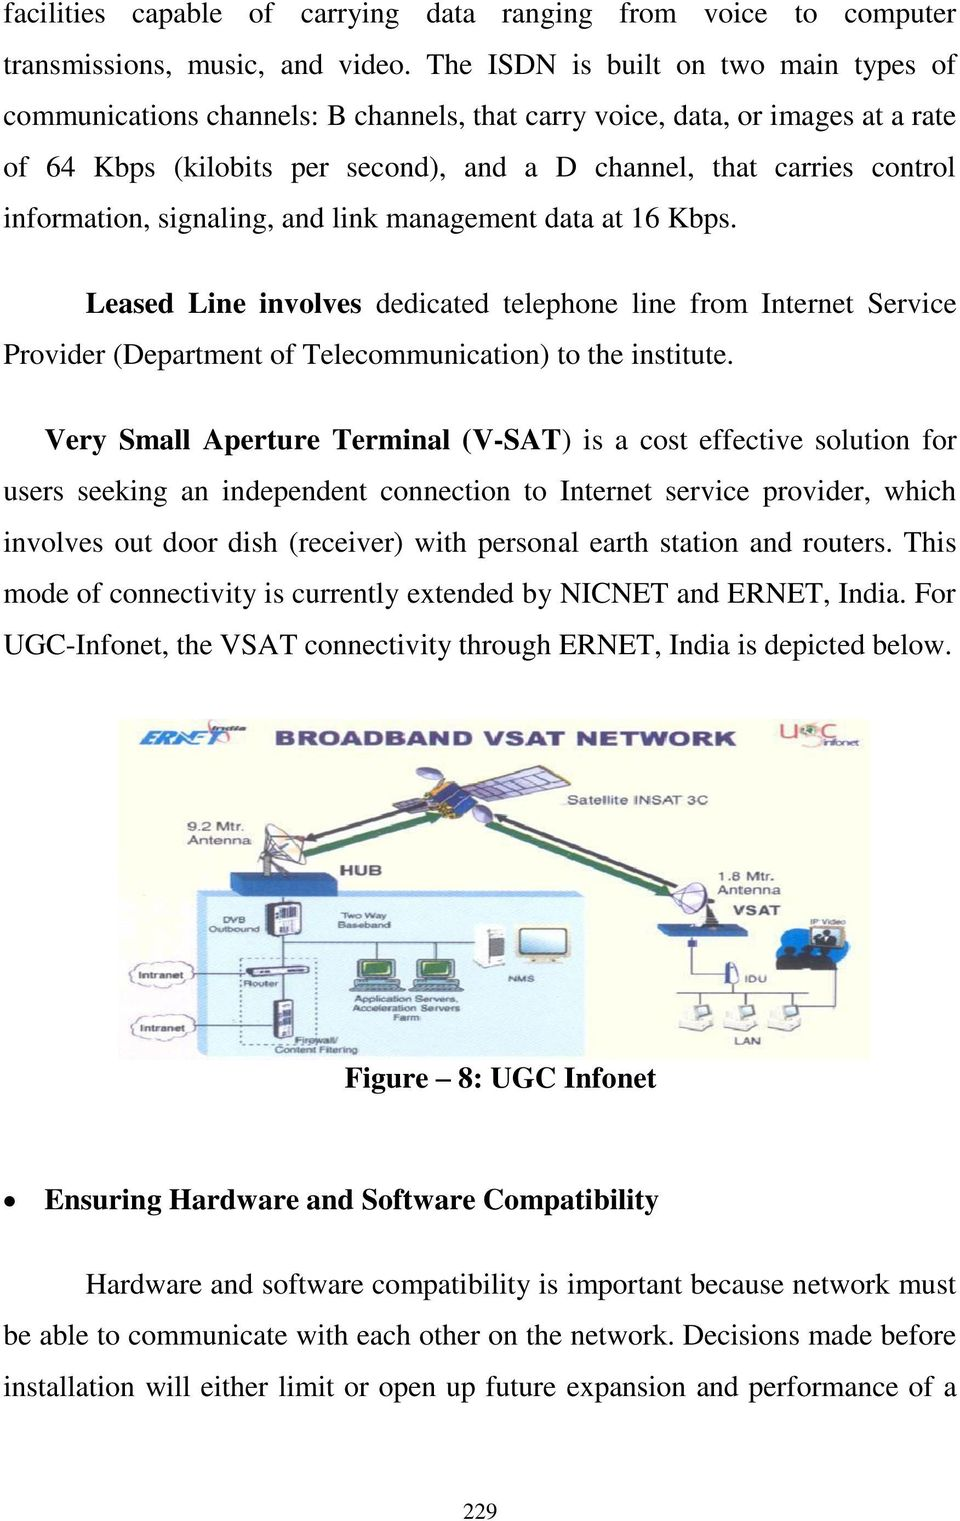 information, signaling, and link management data at 16 Kbps. Leased Line involves dedicated telephone line from Internet Service Provider (Department of Telecommunication) to the institute.